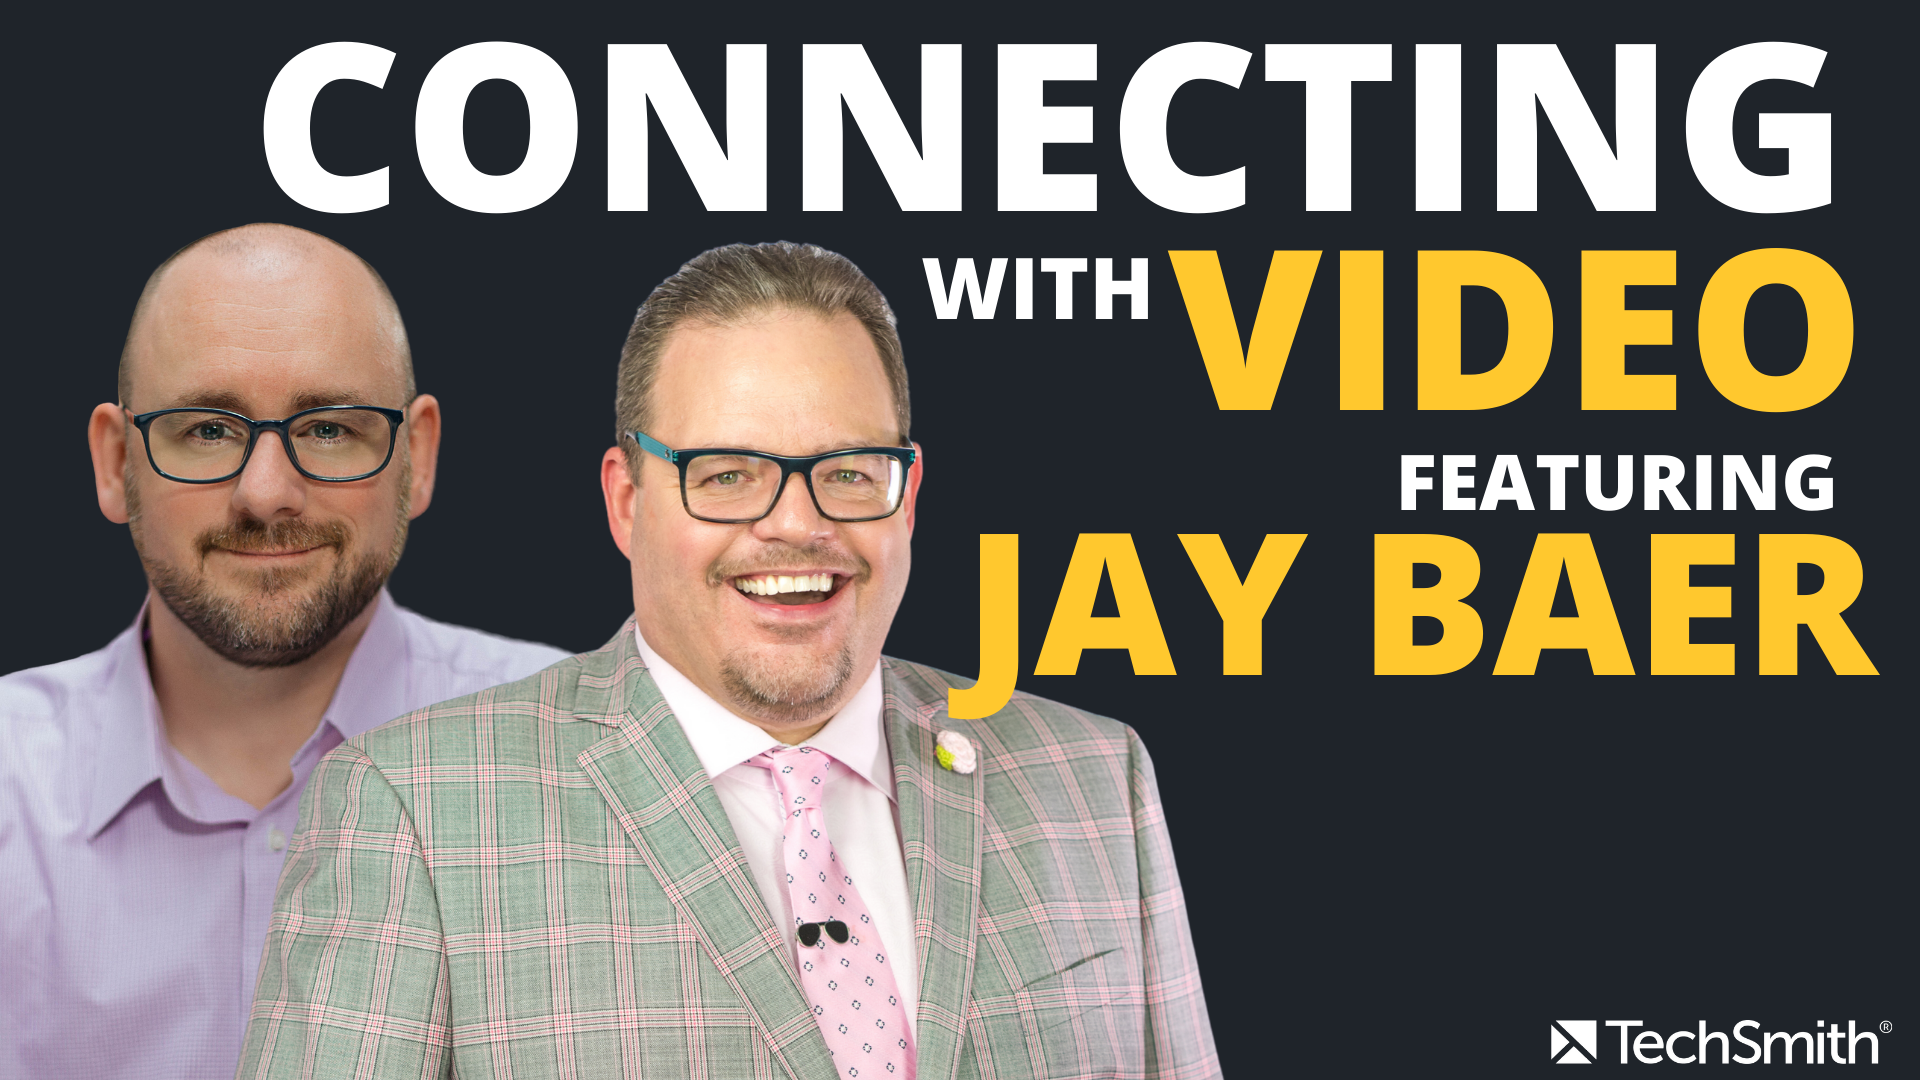 Connecting with Video featuring Jay Baer